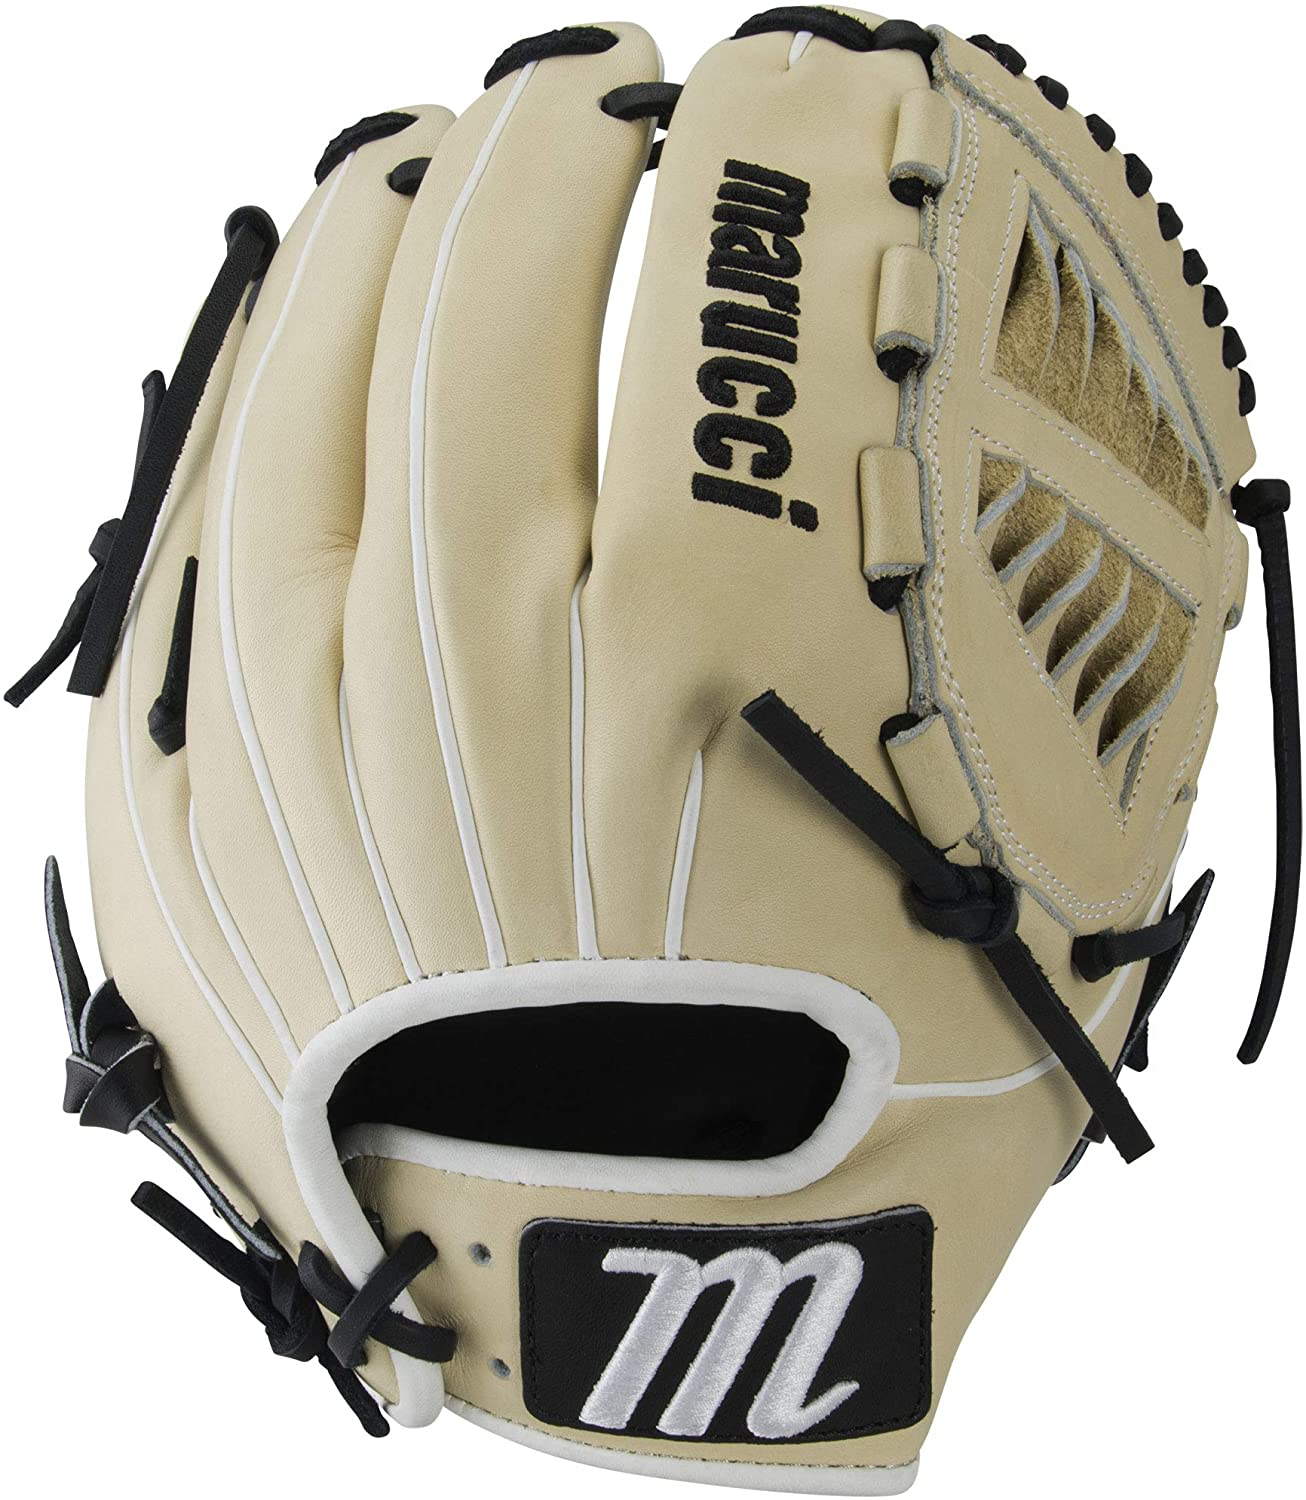 marucci-magnolia-series-12-inch-fastpitch-softball-glove-spiral-web-right-hand-throw MFGMG12FP-CMBK-RightHandThrow   Premium Japanese-tanned steerhide leather provides stiffness and rugged durability Cushioned leather